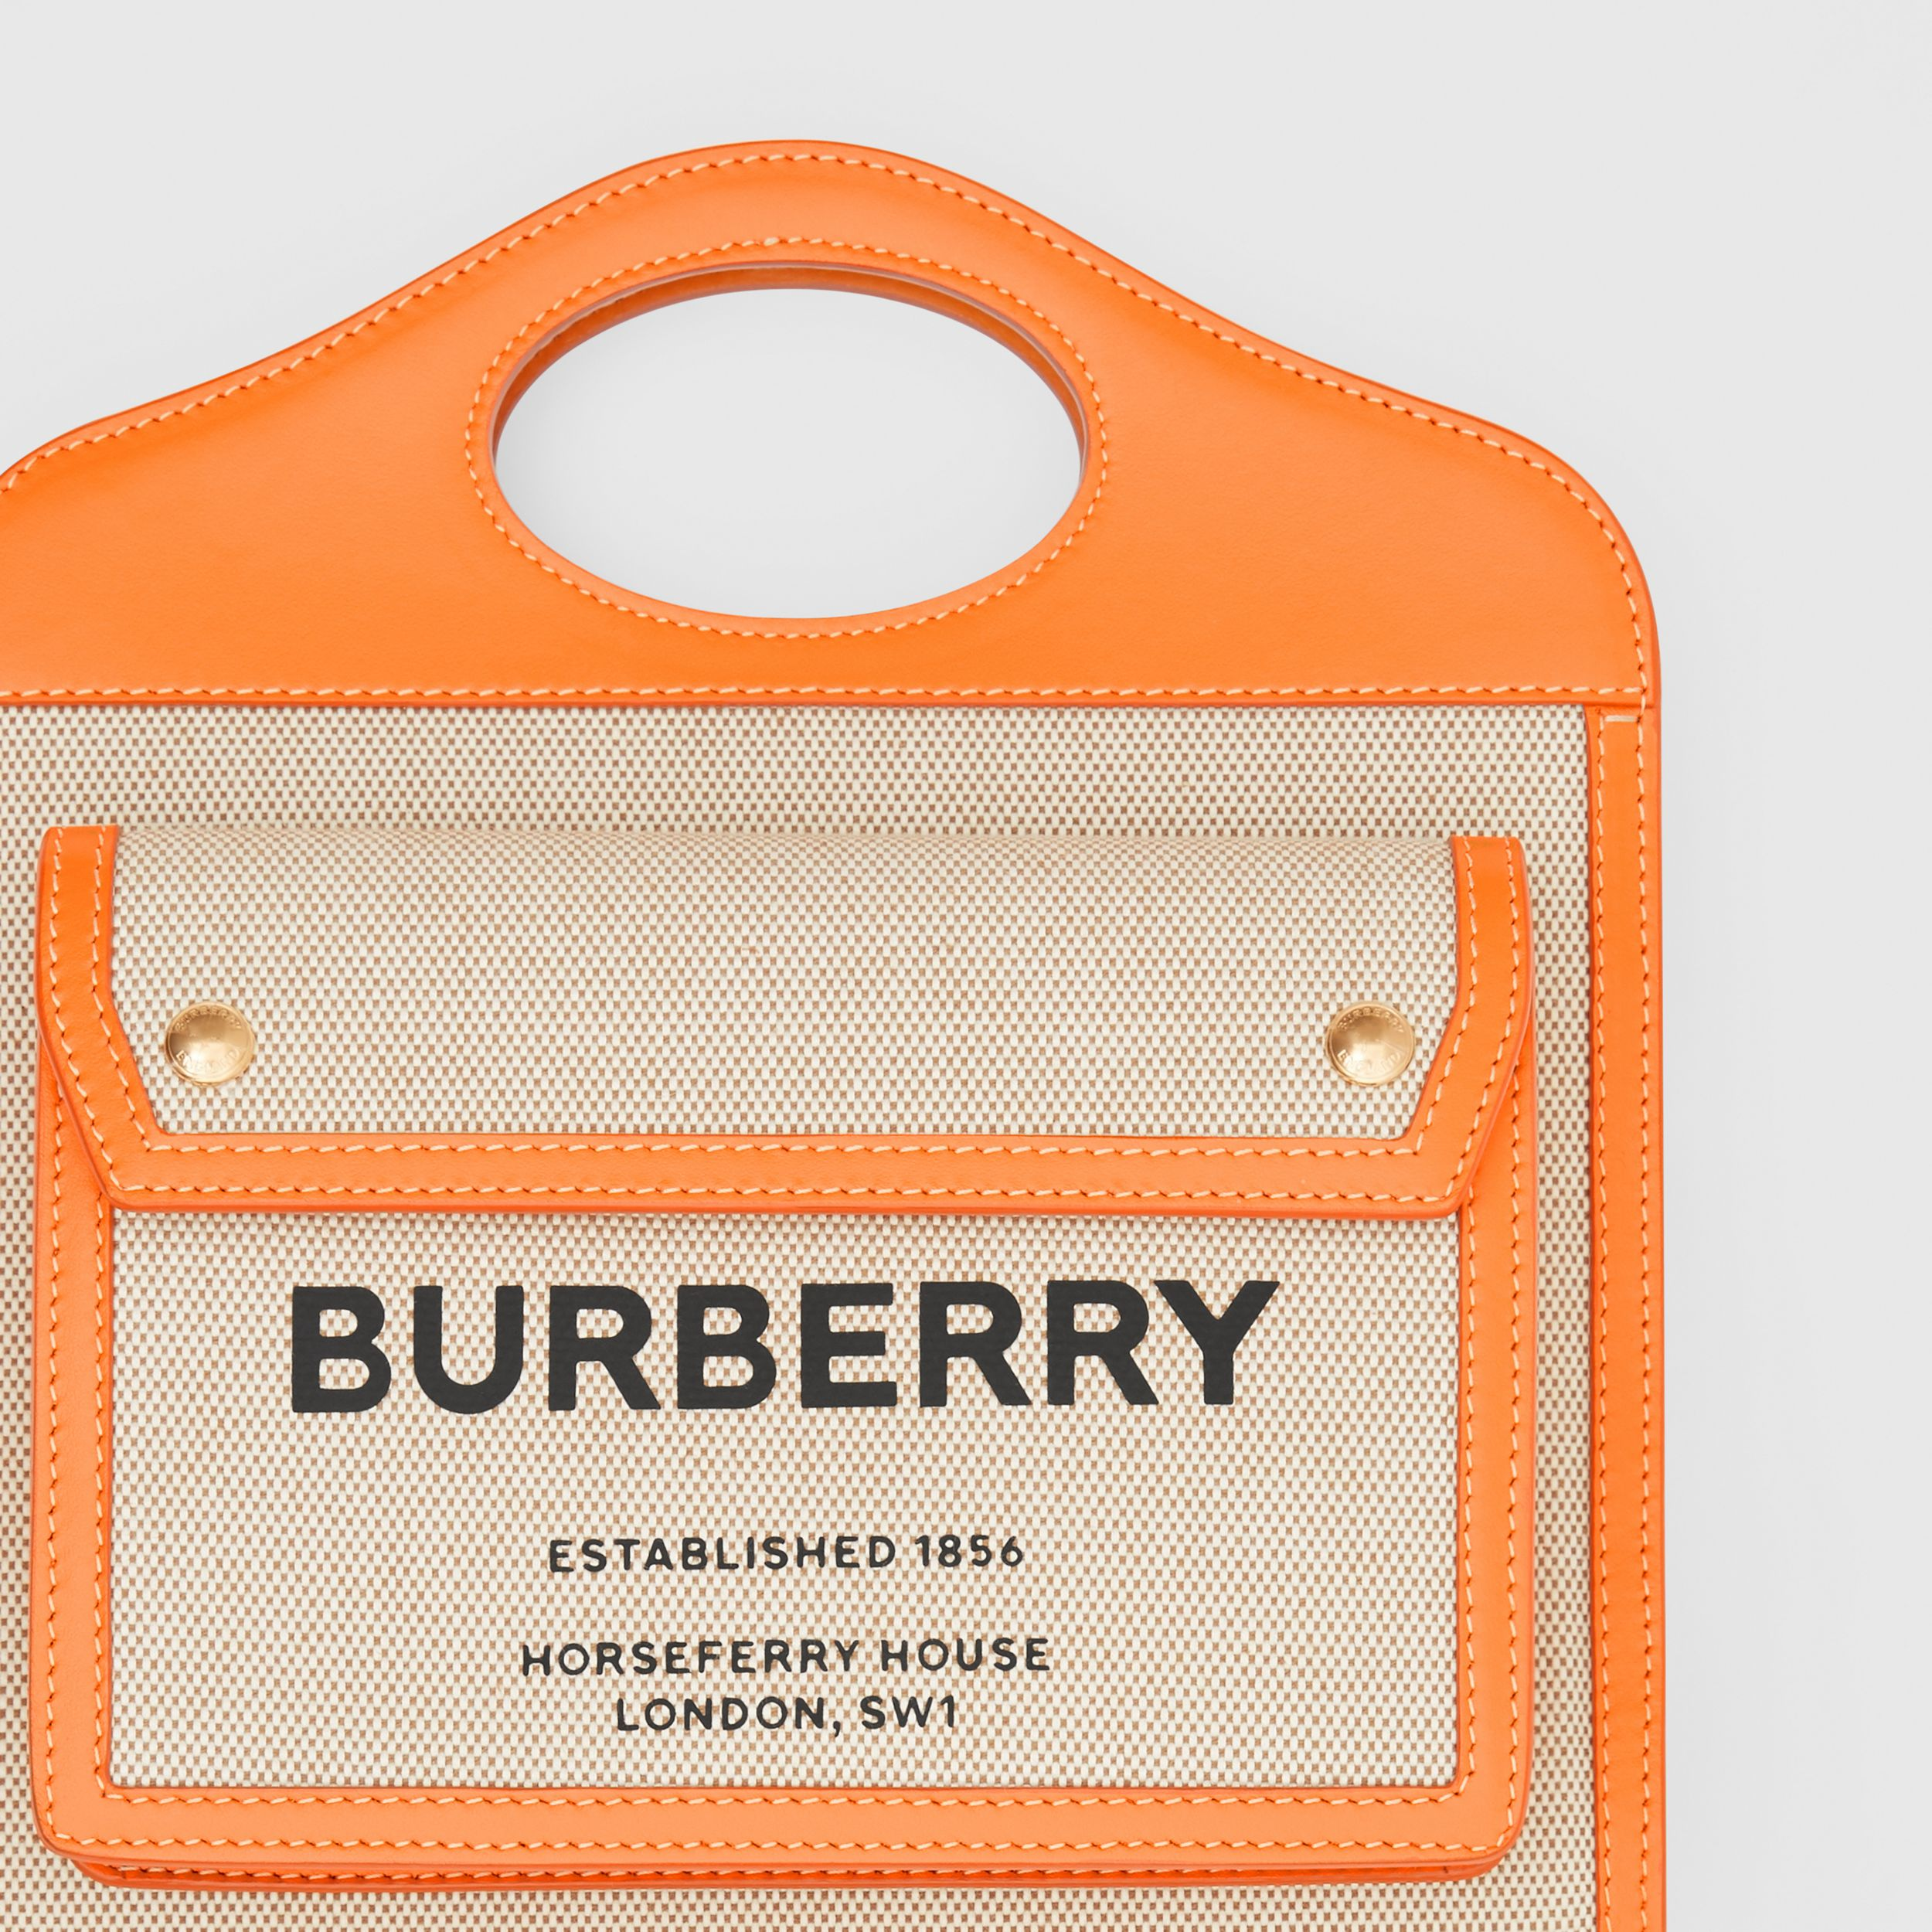 Mini Two-tone Canvas and Leather Pocket Bag in Orange - Women | Burberry - 2